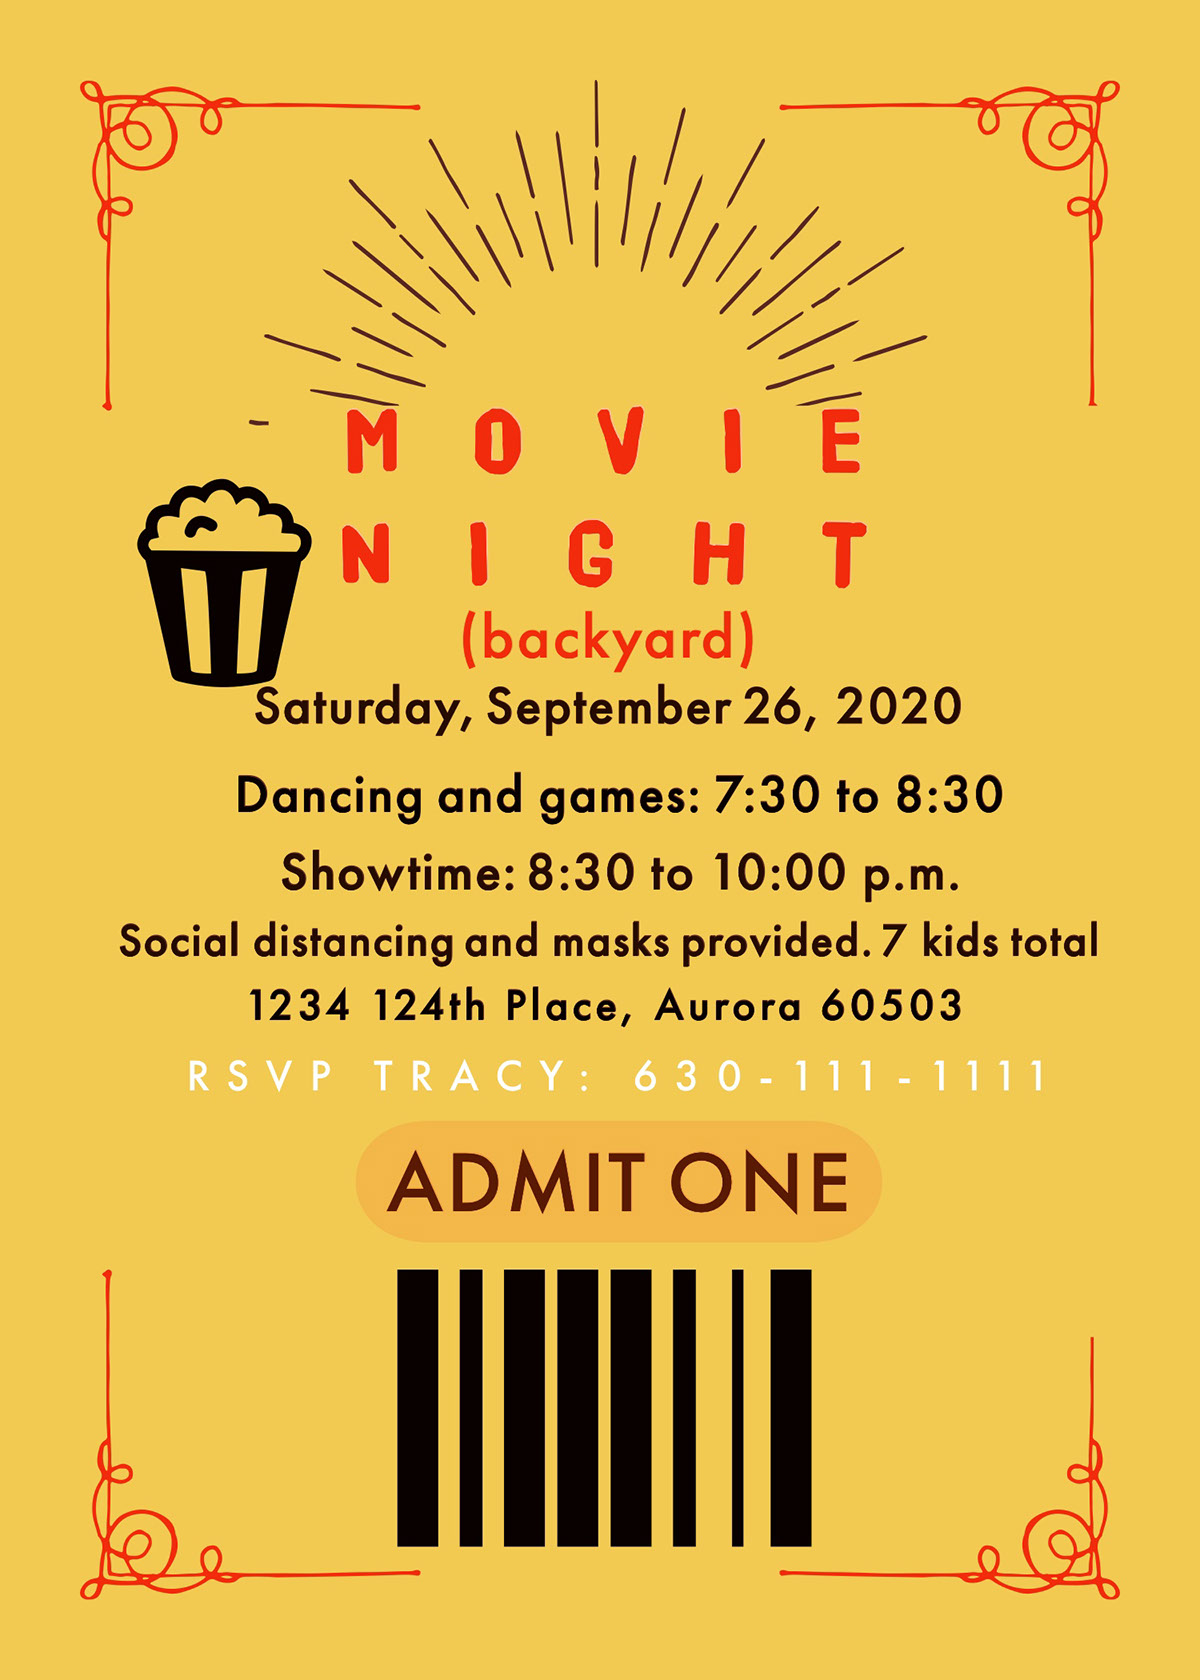 . . (backyard) N I G H T M O V I E ADMIT ONE Saturday, September 26, 2020 RSVP TRACY: 630-111-1111 Dancing and games: 7:30 to 8:30 Showtime: 8:30 to 10:00 p.m. 1234 124th Place, Aurora 60503 Social distancing and masks provided. 7 kids total